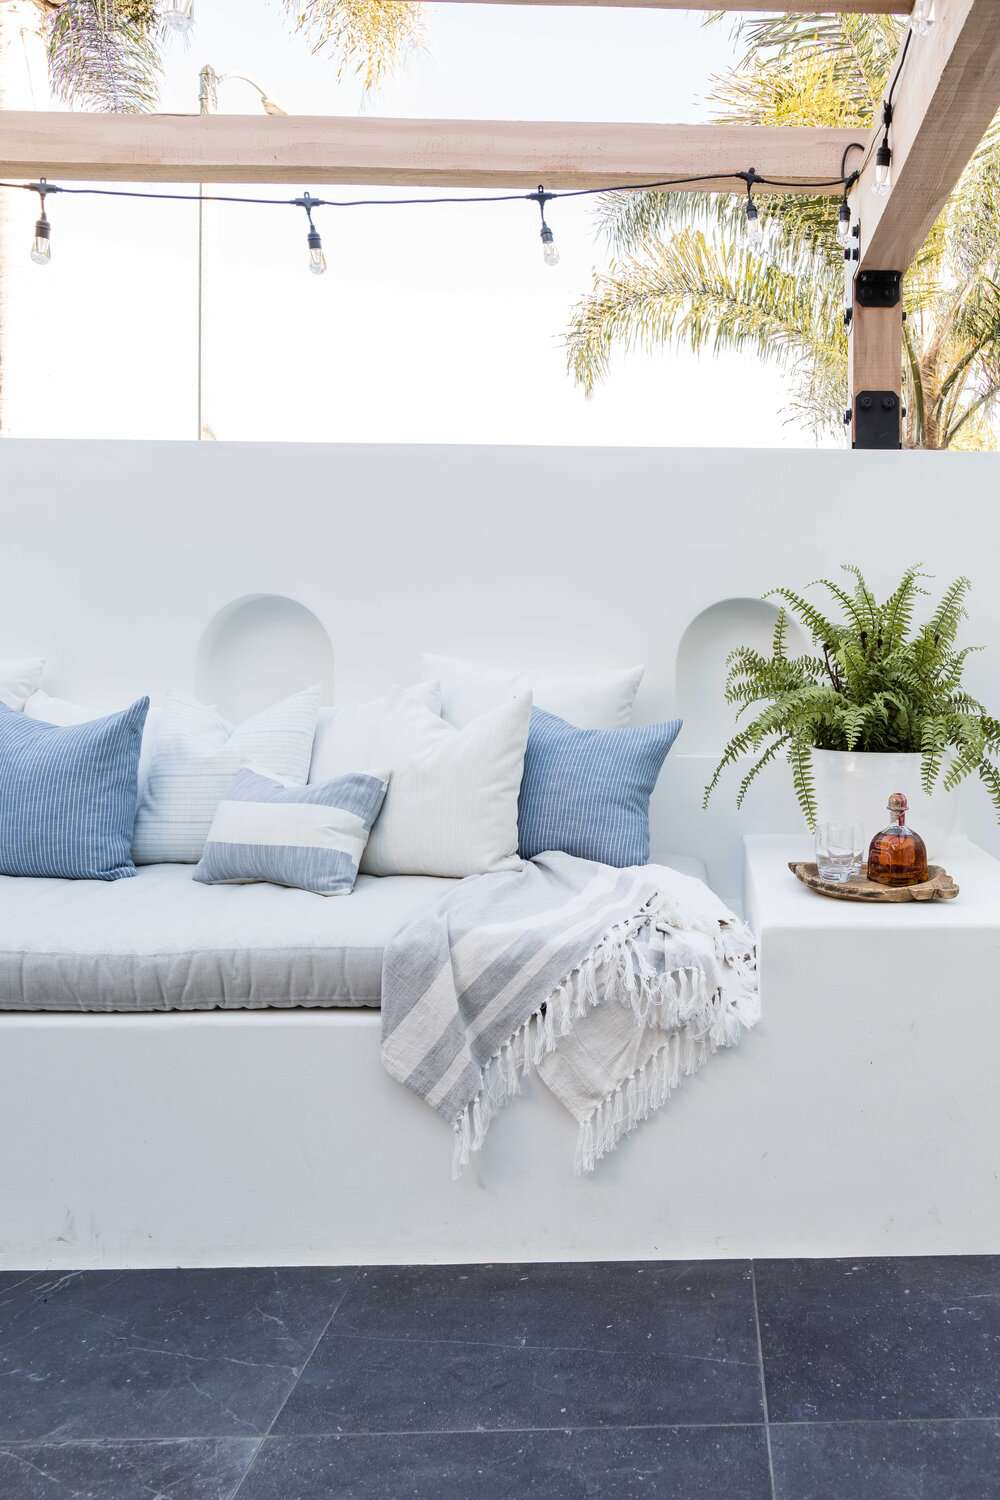 White built-in bench on a porch